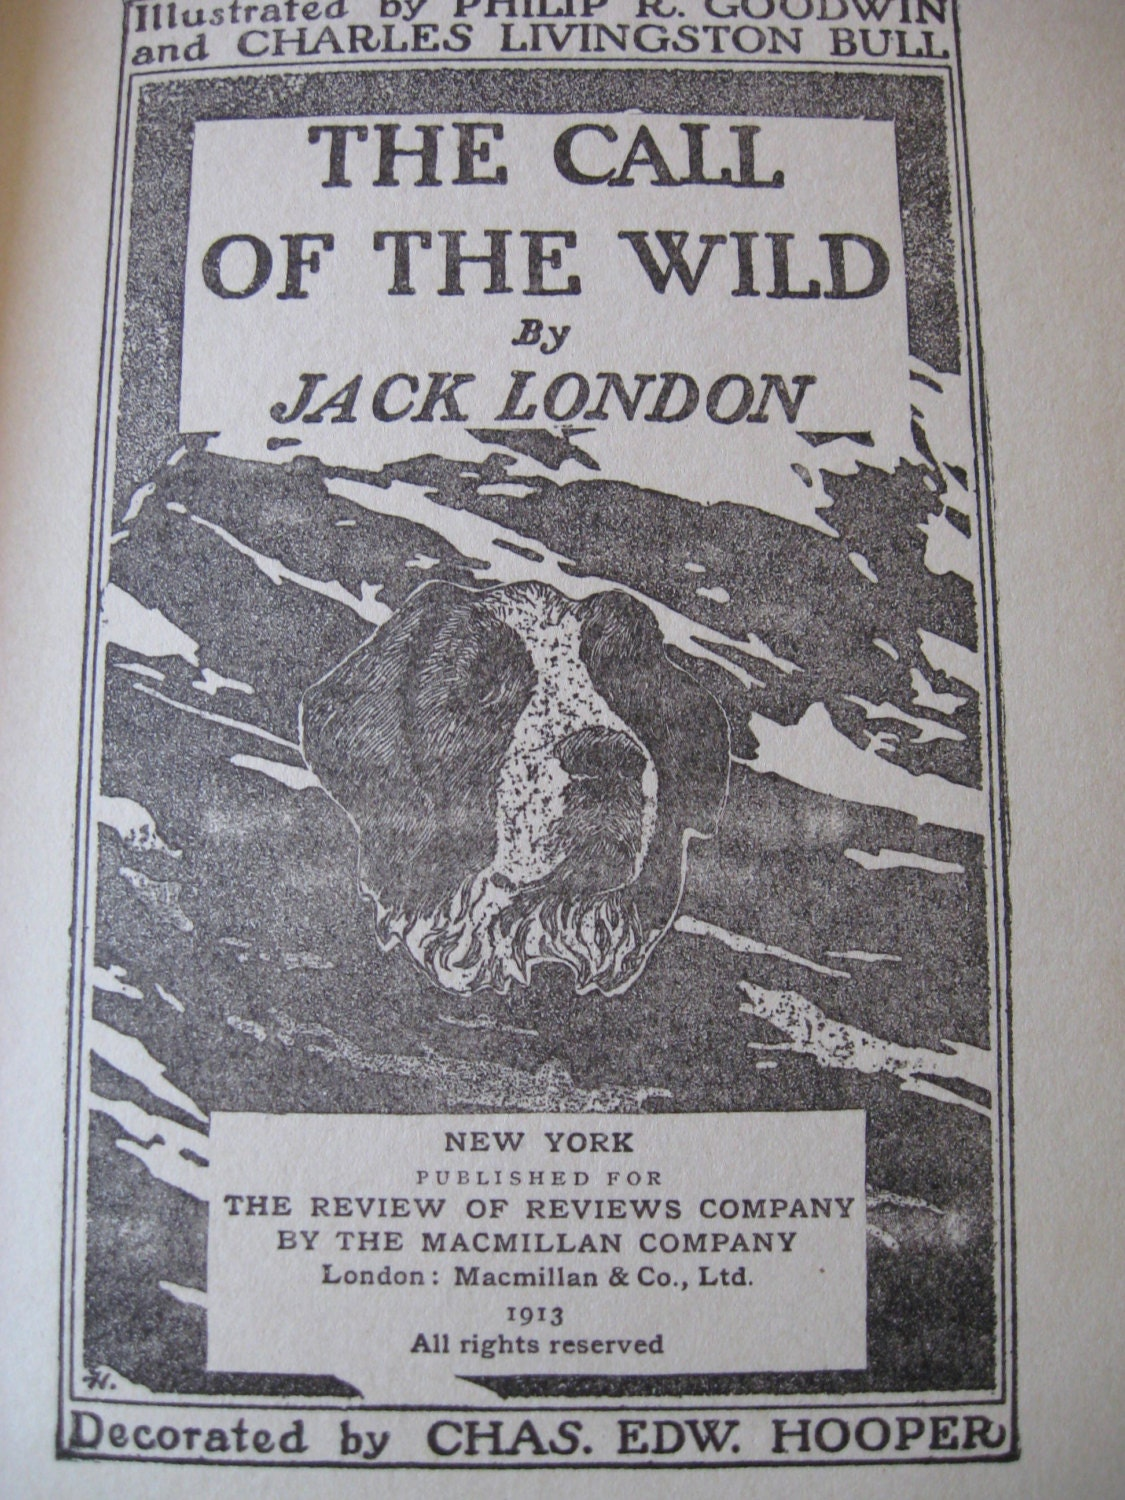 a review of call of the wild a novel by jack london He eventually answers as the title of the book suggests the call of the wild the writing of jack london is as excellent as promised i am generally a pacifistic.